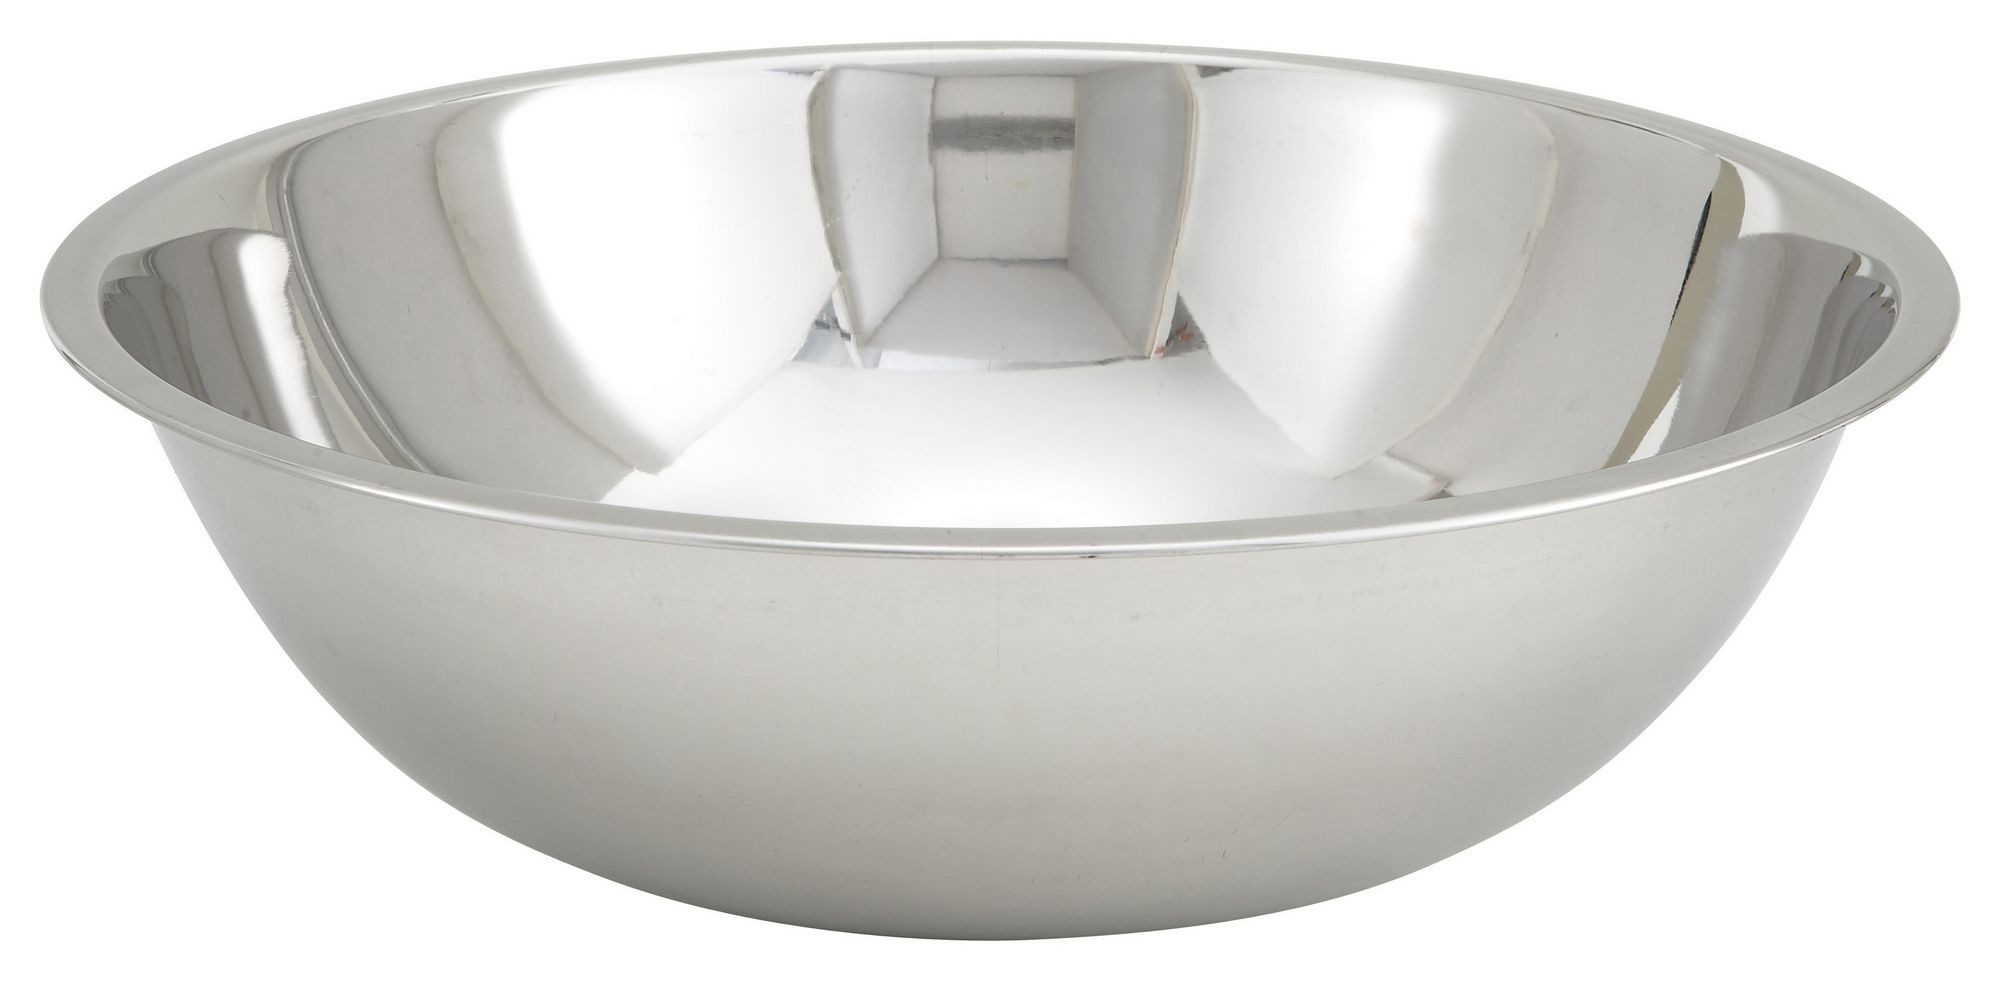 Winco MXBT-1300Q Stainless Steel All-Purpose Mixing Bowl 13 Qt.